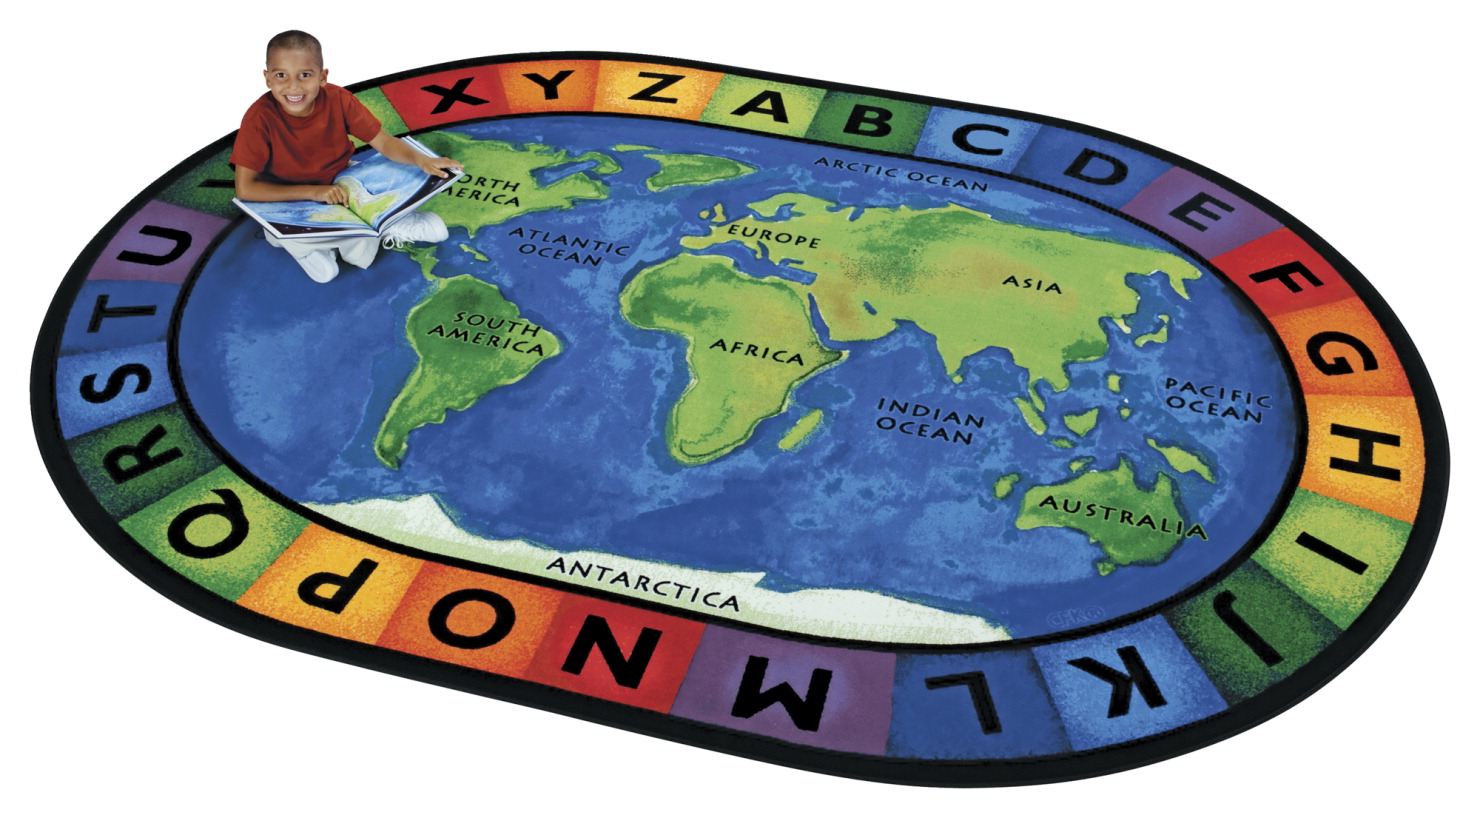 Carpets For Kids Circletime Around The World Rug, 6 Feet 9 Inches x 9 Feet 5 Inches, Oval